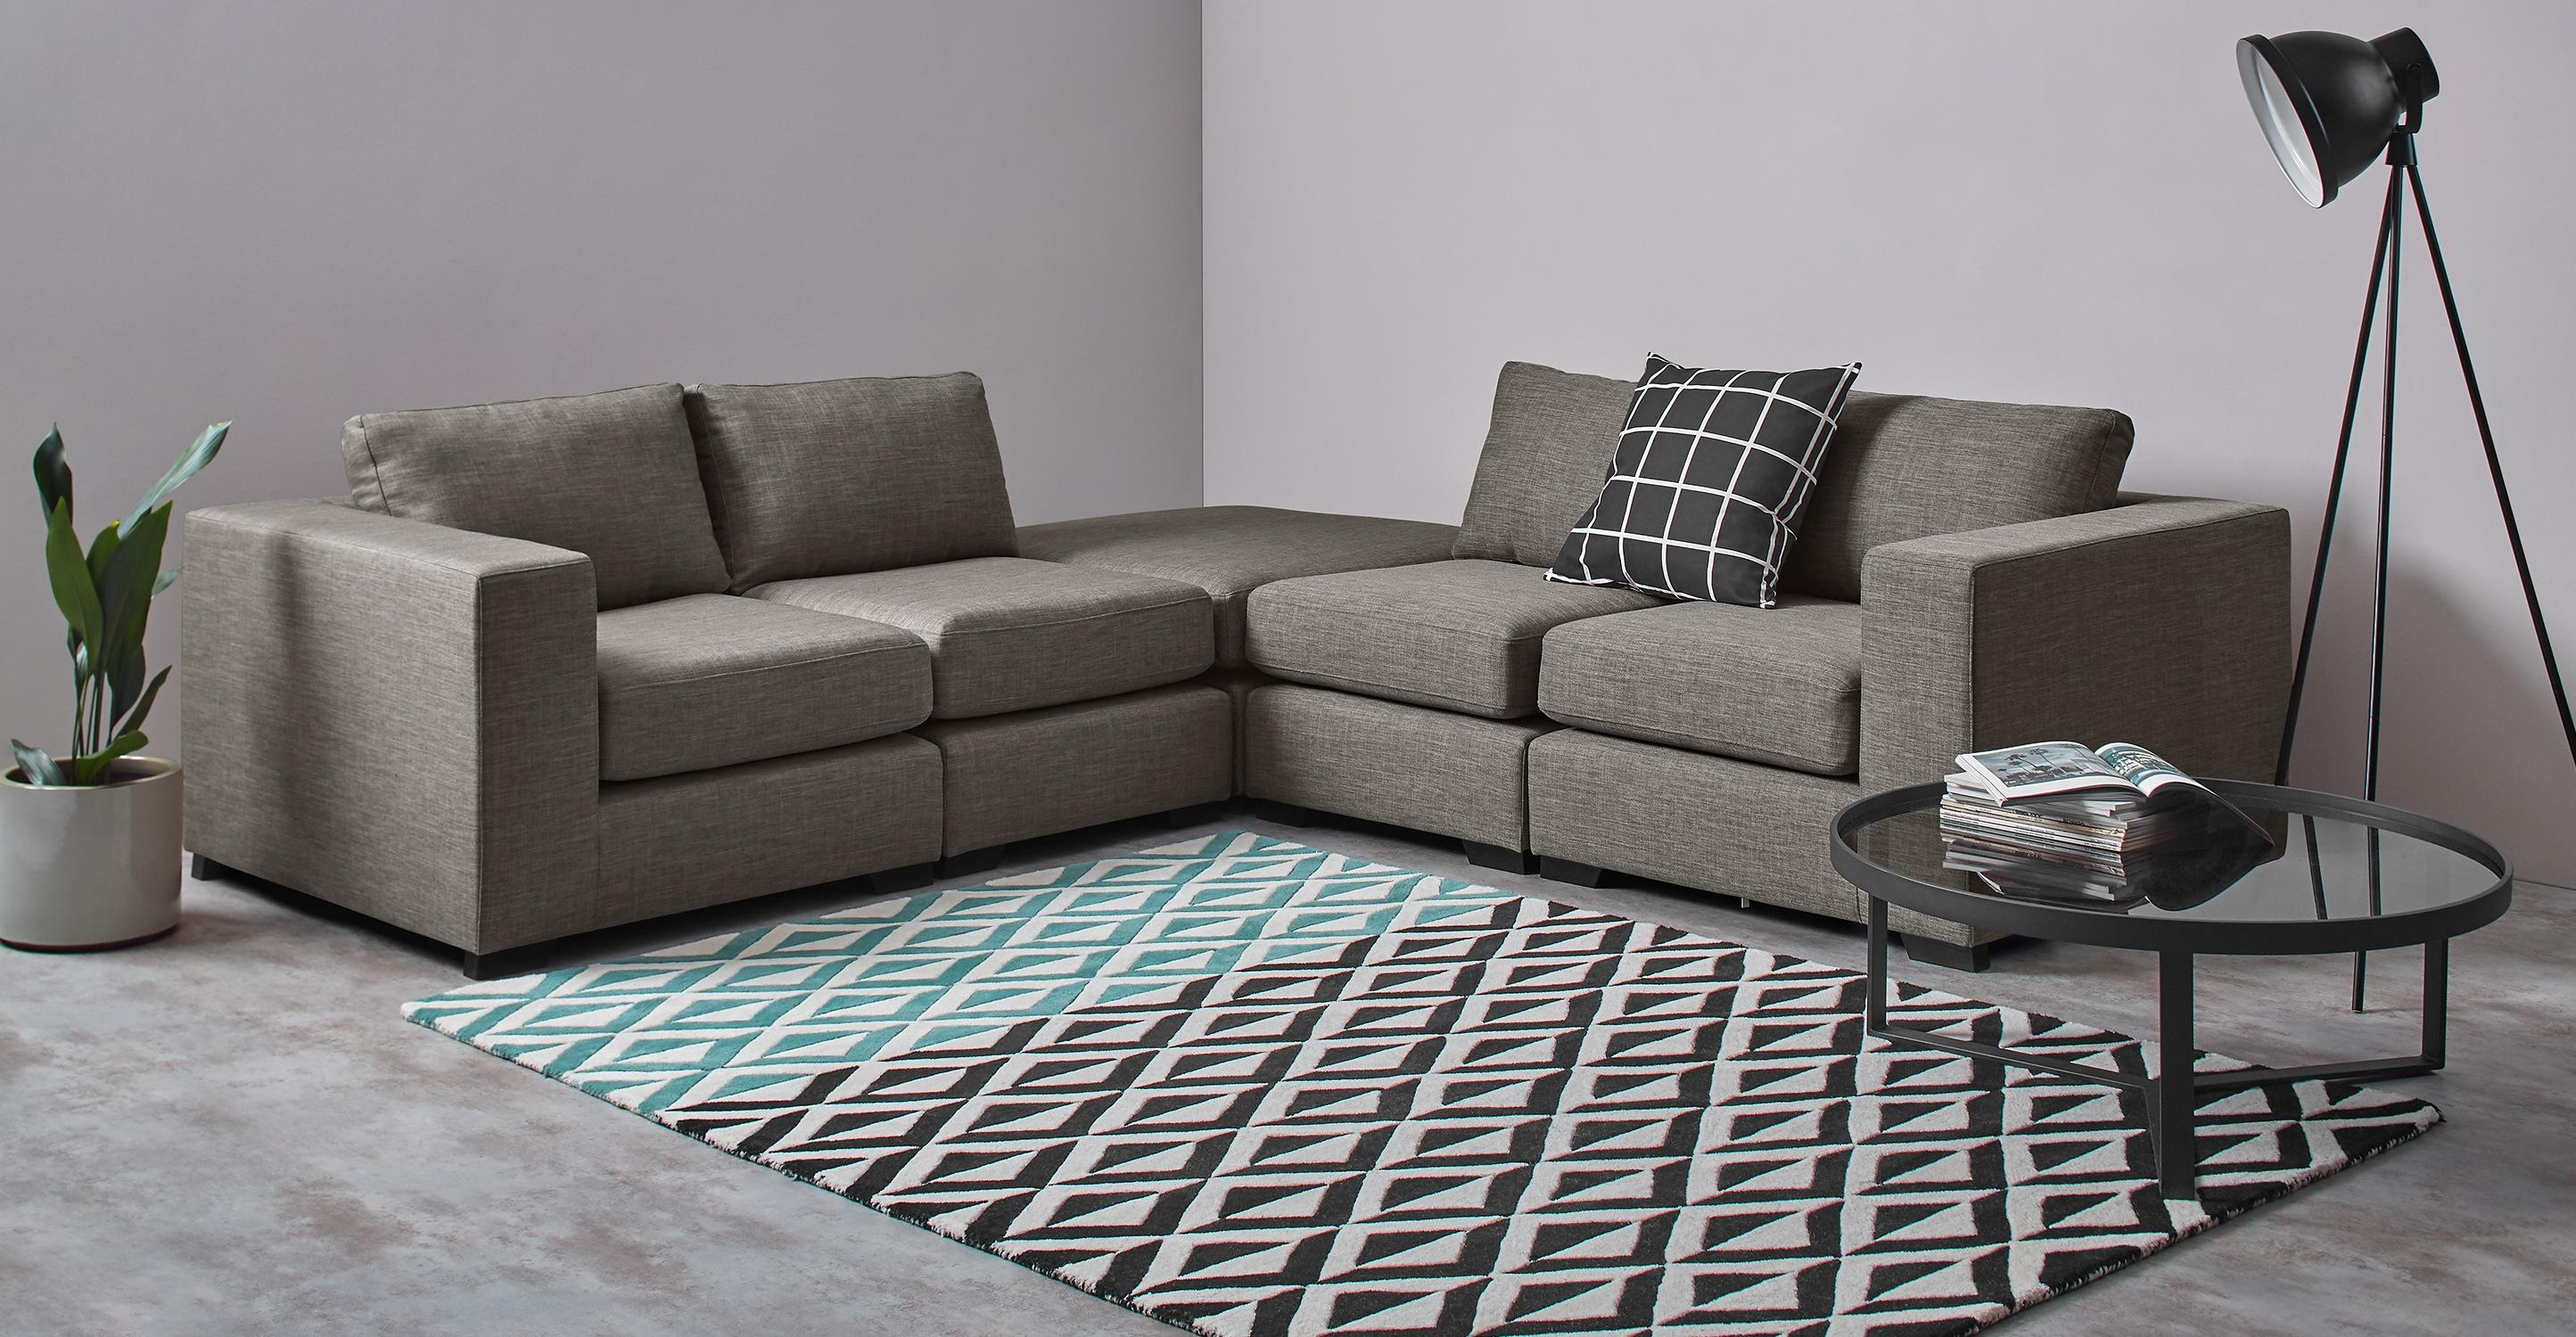 Mortimer Modular Corner Sofa Group, Chalk Grey | Made Intended For Modular Corner Sofas (View 13 of 20)